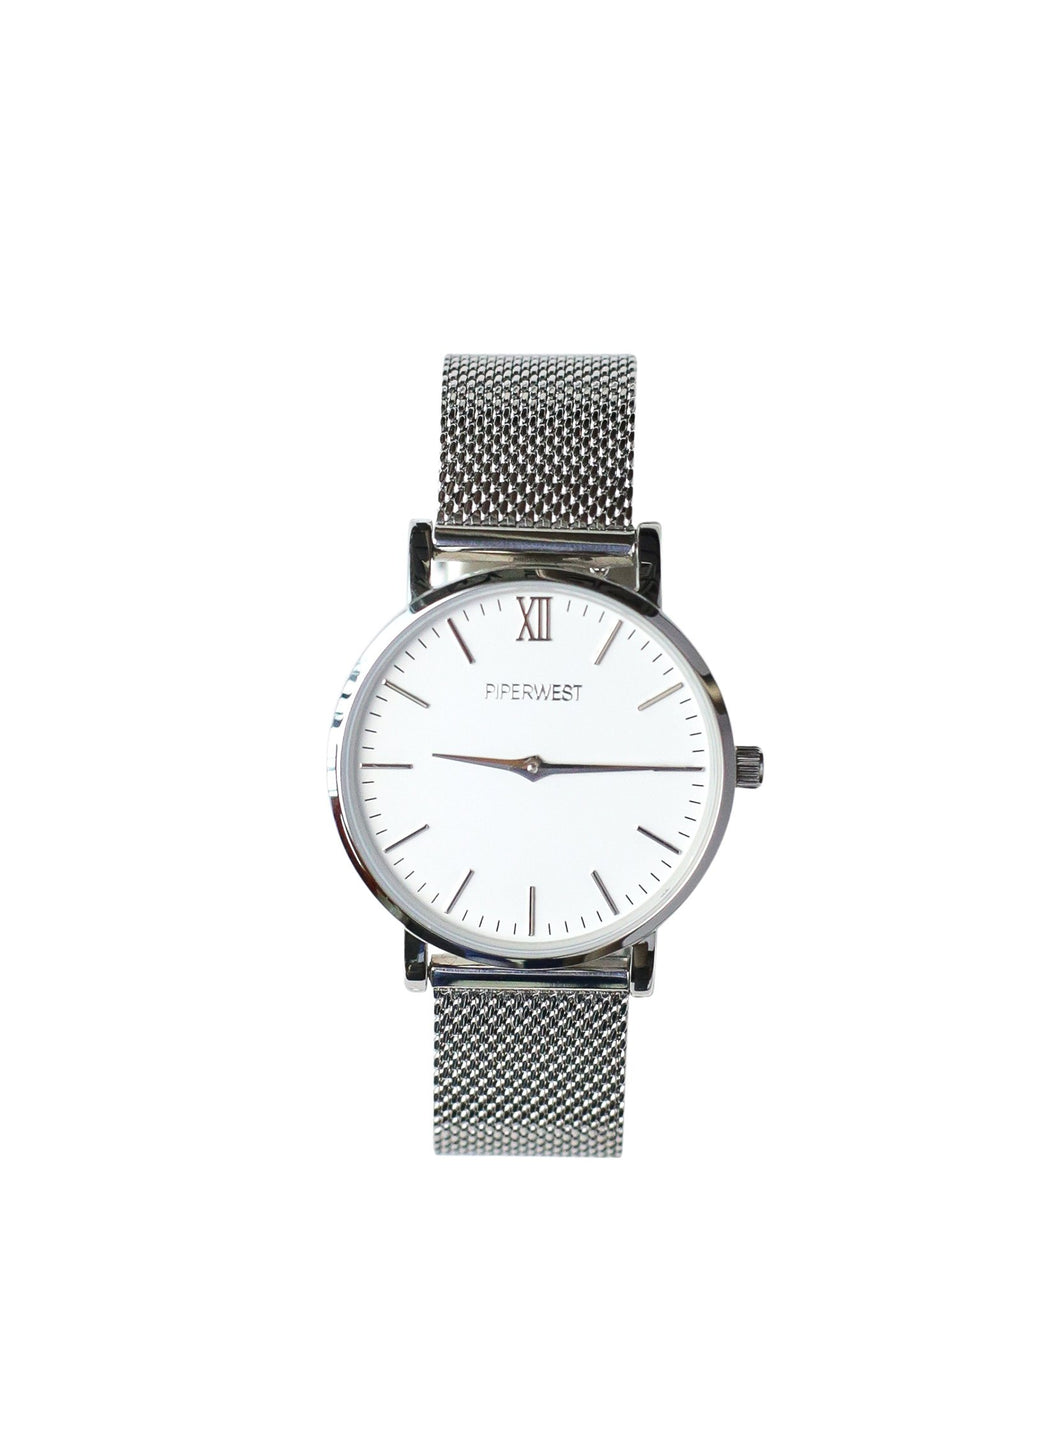 Piperwest Mini-Mesh Minimalist Watch